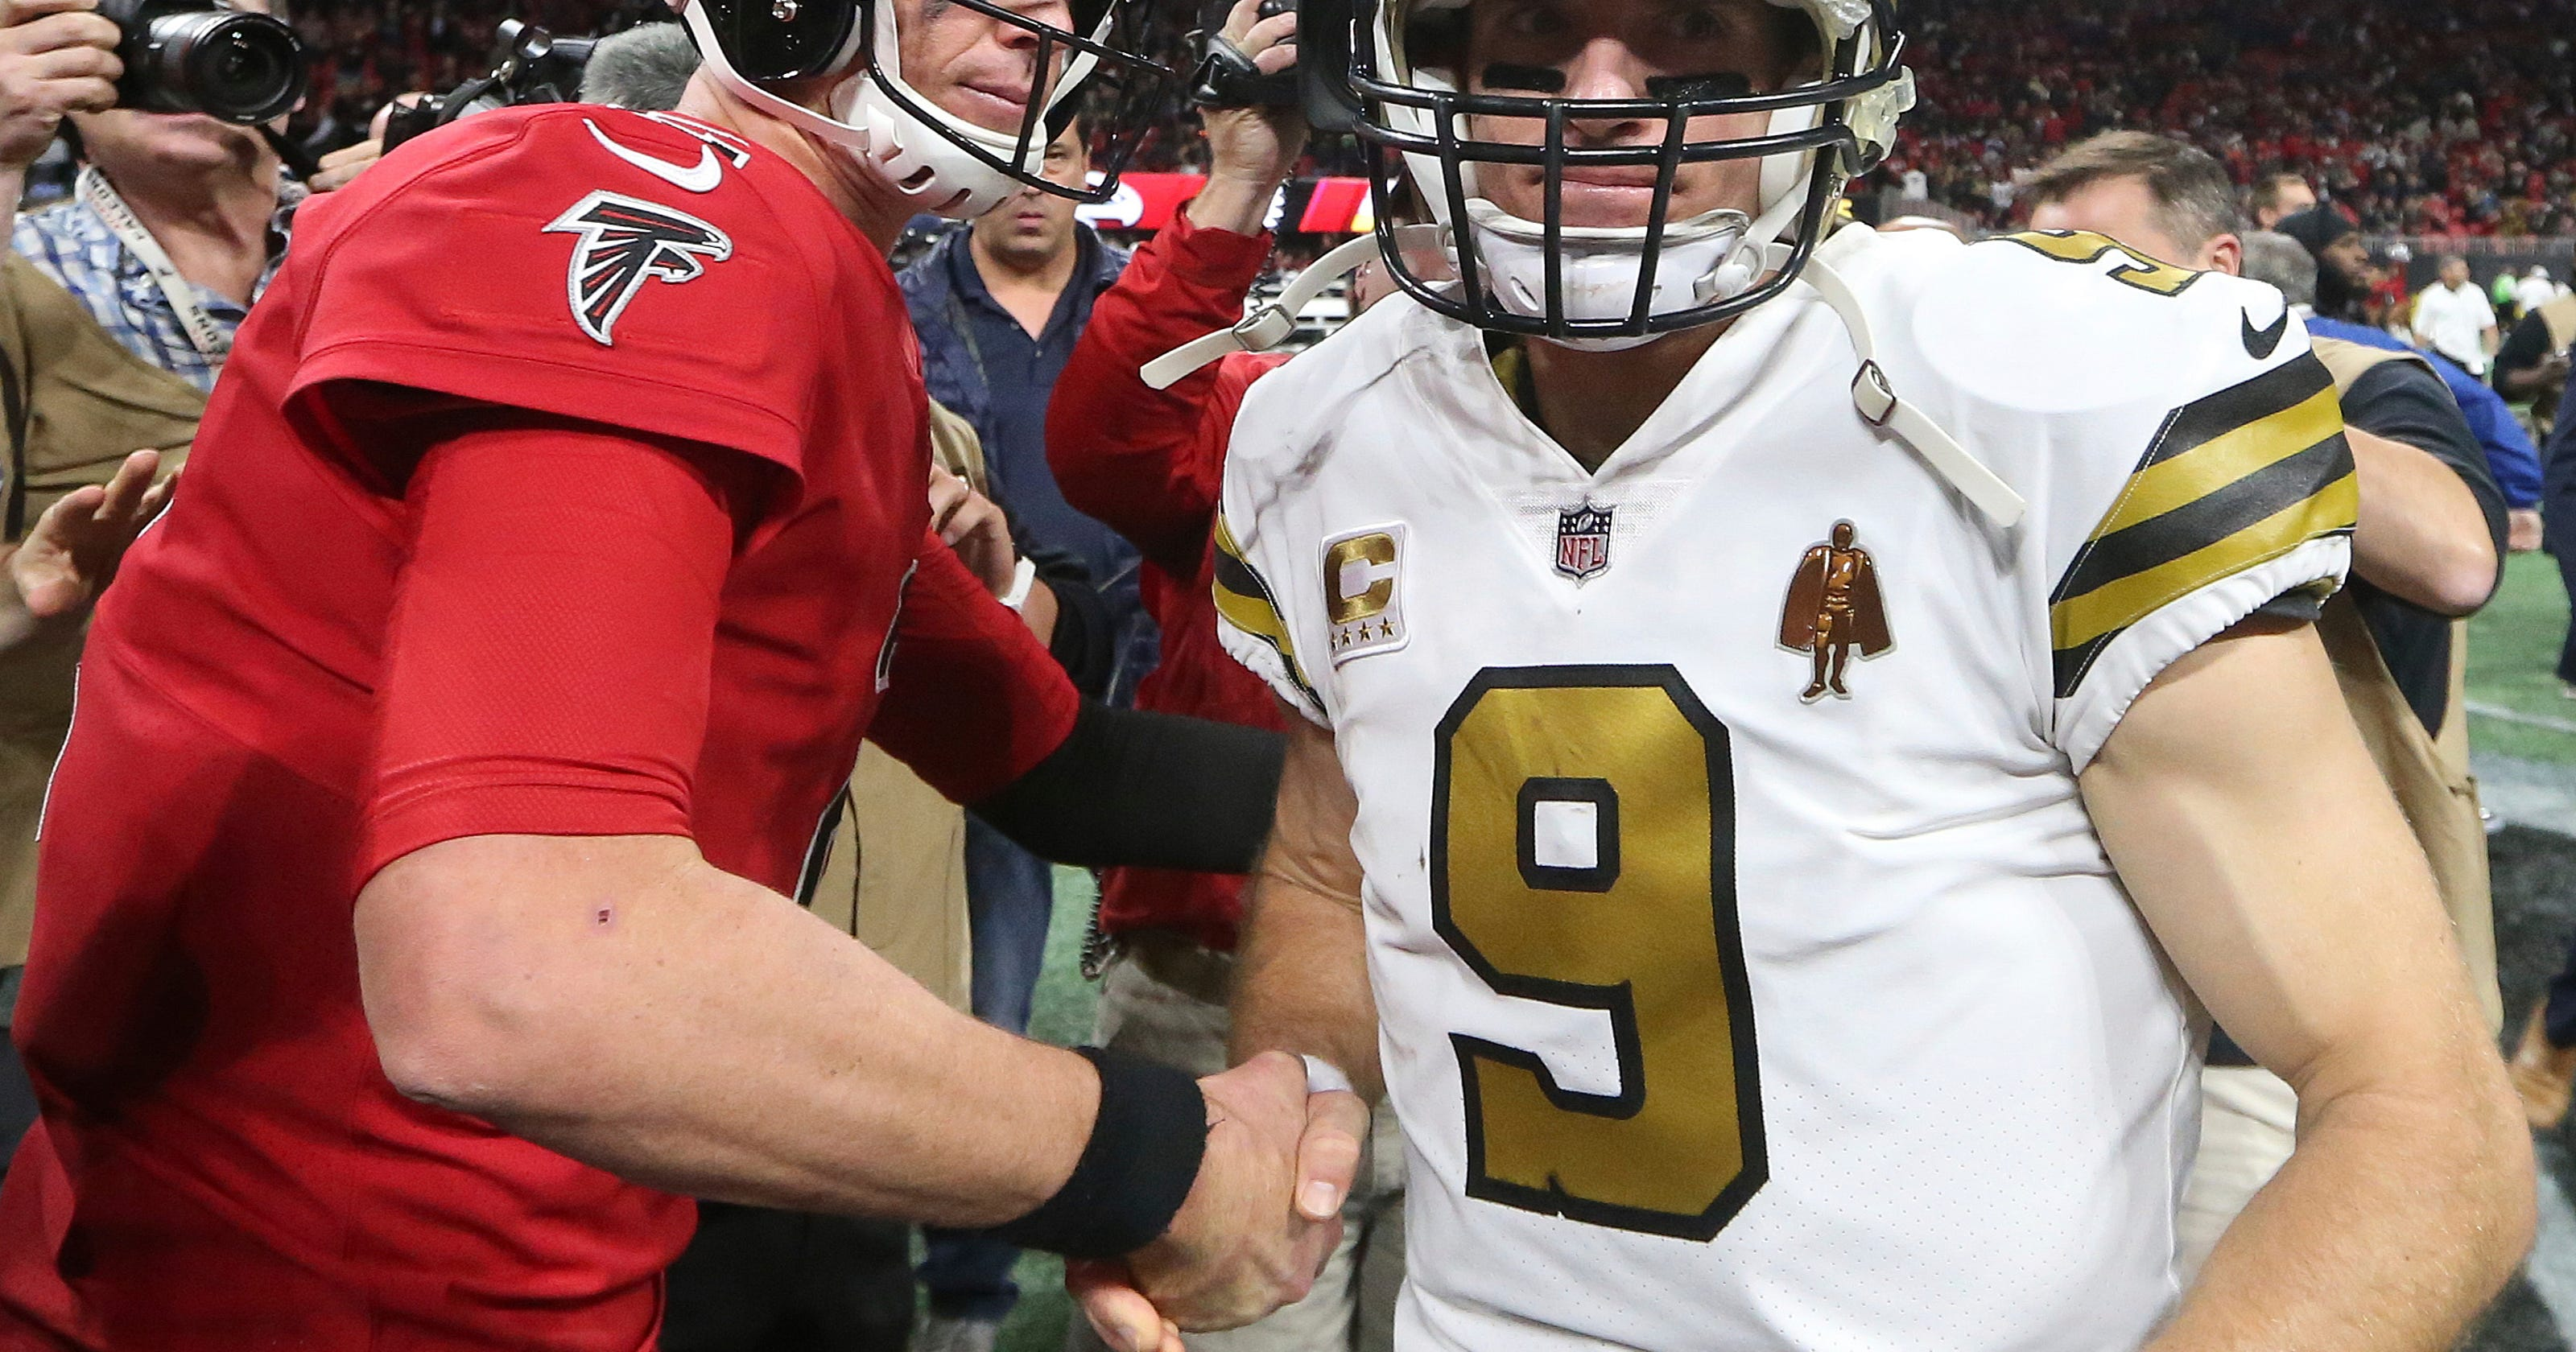 Drew Brees goes for the win be41a3a97